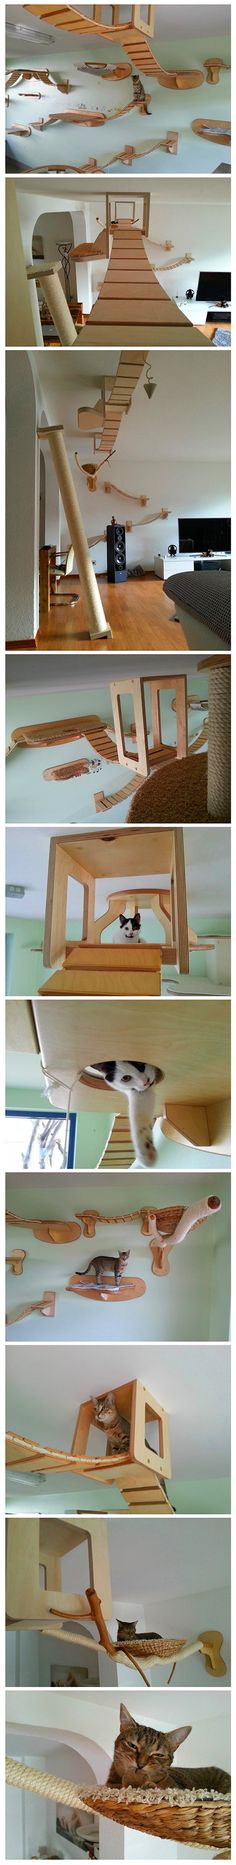 German design company Goldtatze (Gold Paw) specializes in transforming ordinary rooms into overhead playgrounds for cats. By adding wooden bridges, hammocks, scratching posts, and even little dens for